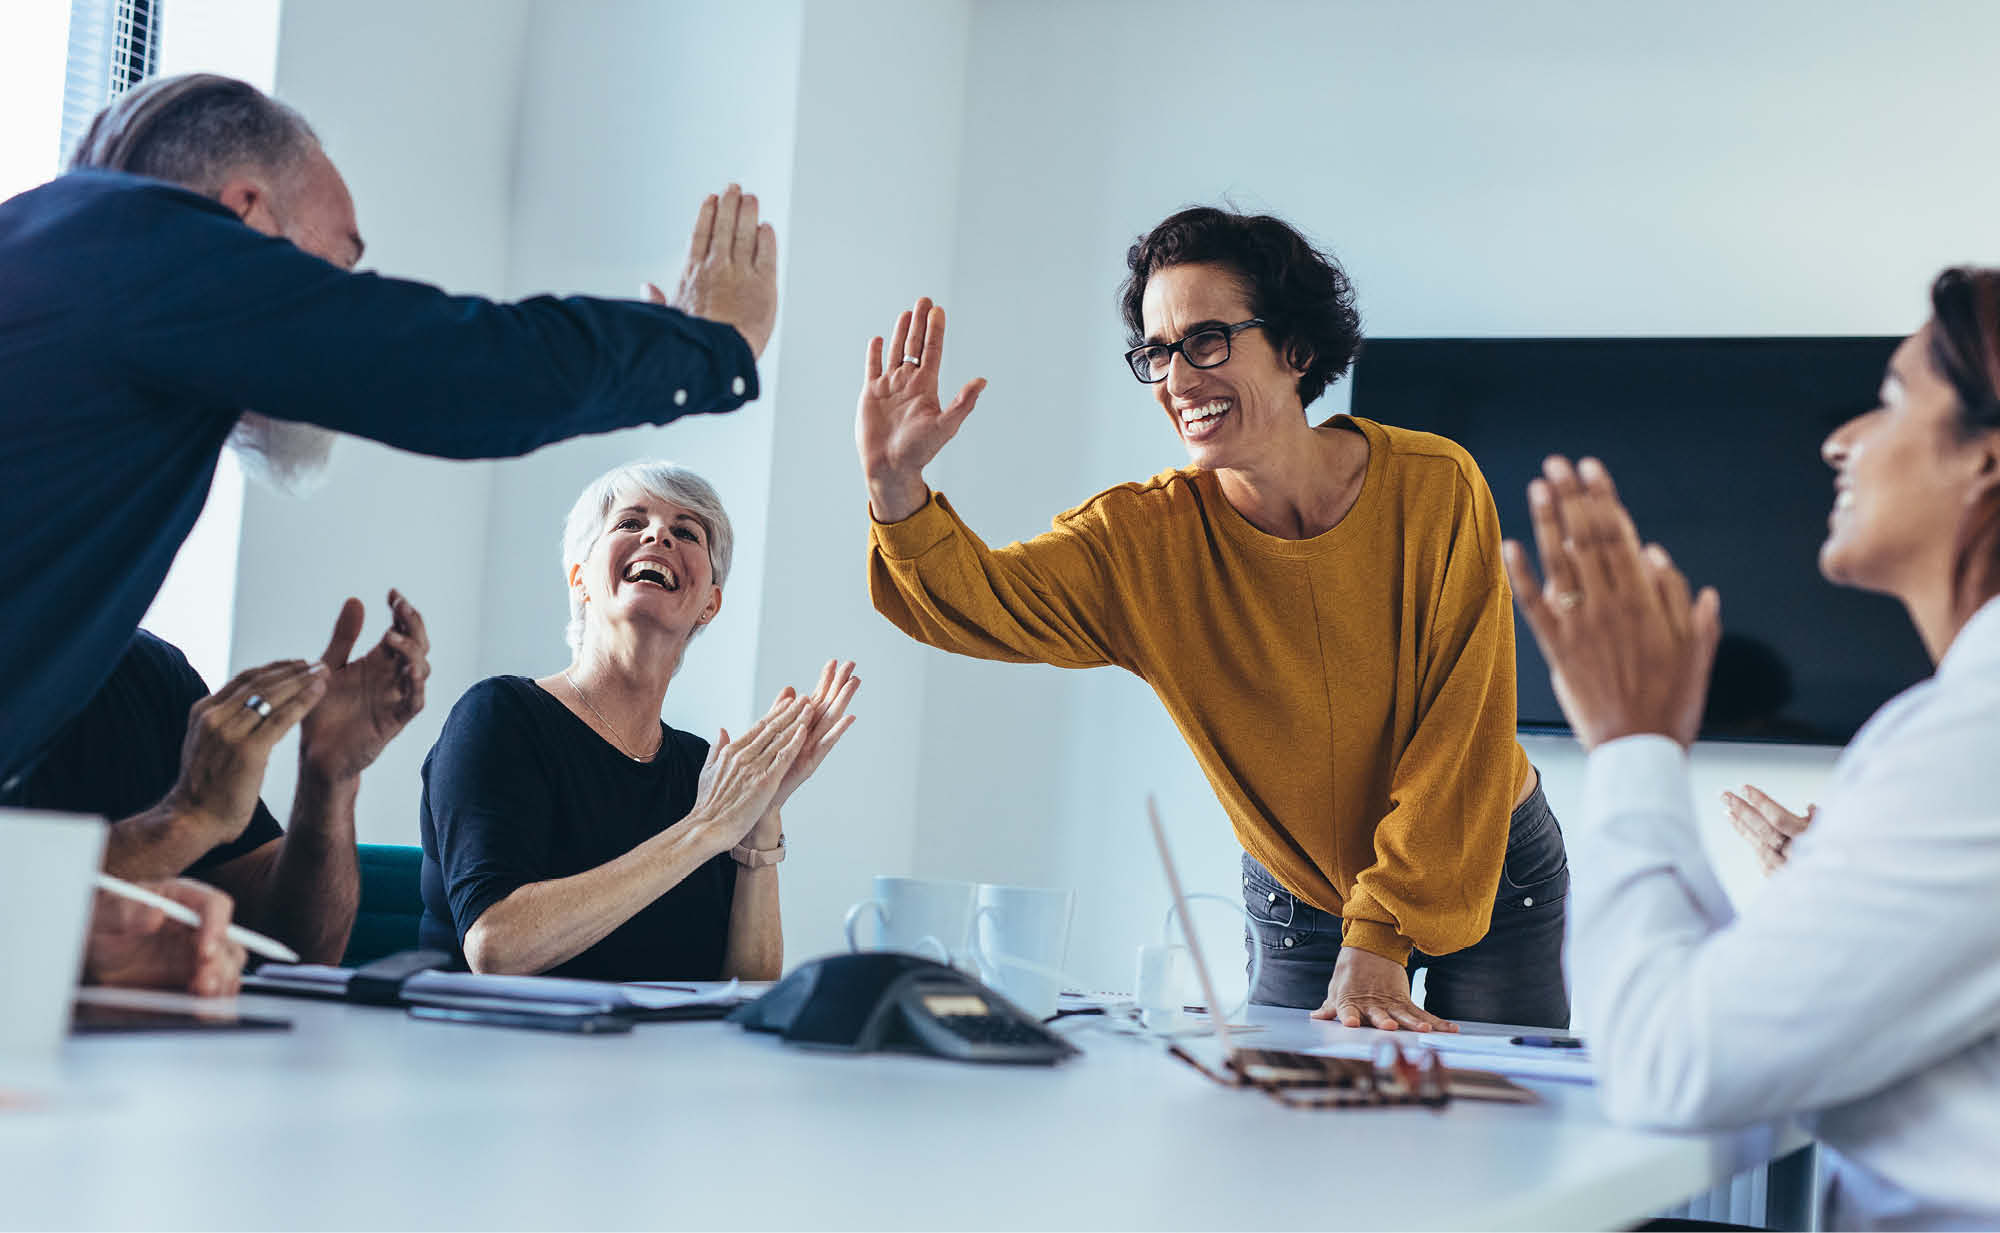 Group of happy, engaged employees giving each other high fives